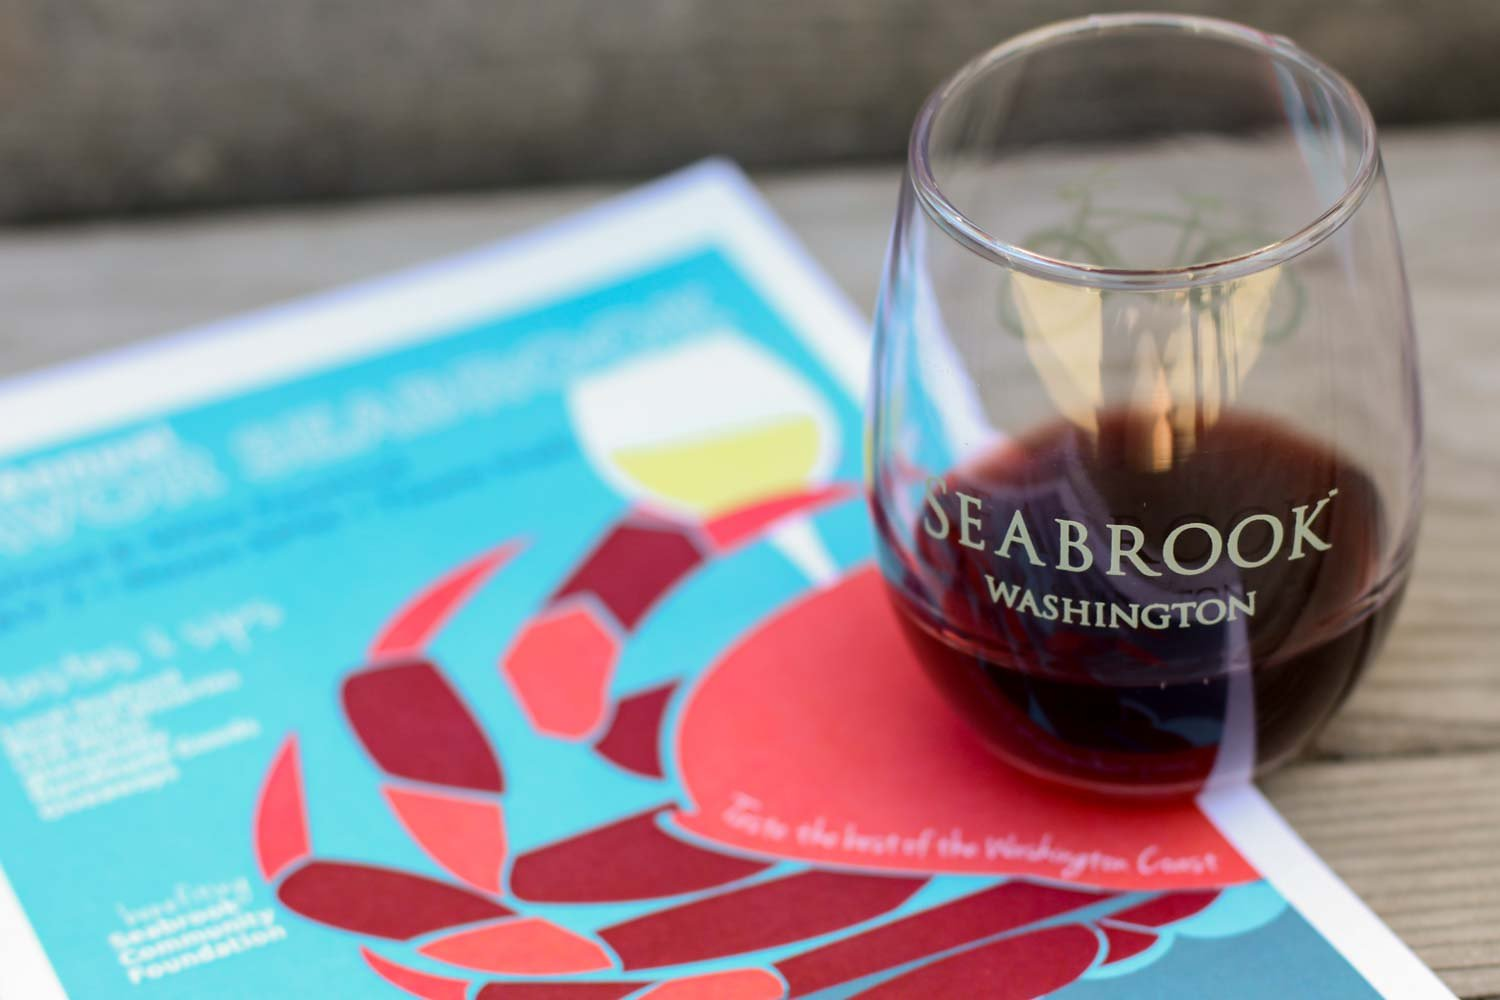 $20 admission to Savor Seabrook includes 10 tasting tickets and keepsake wine glass.